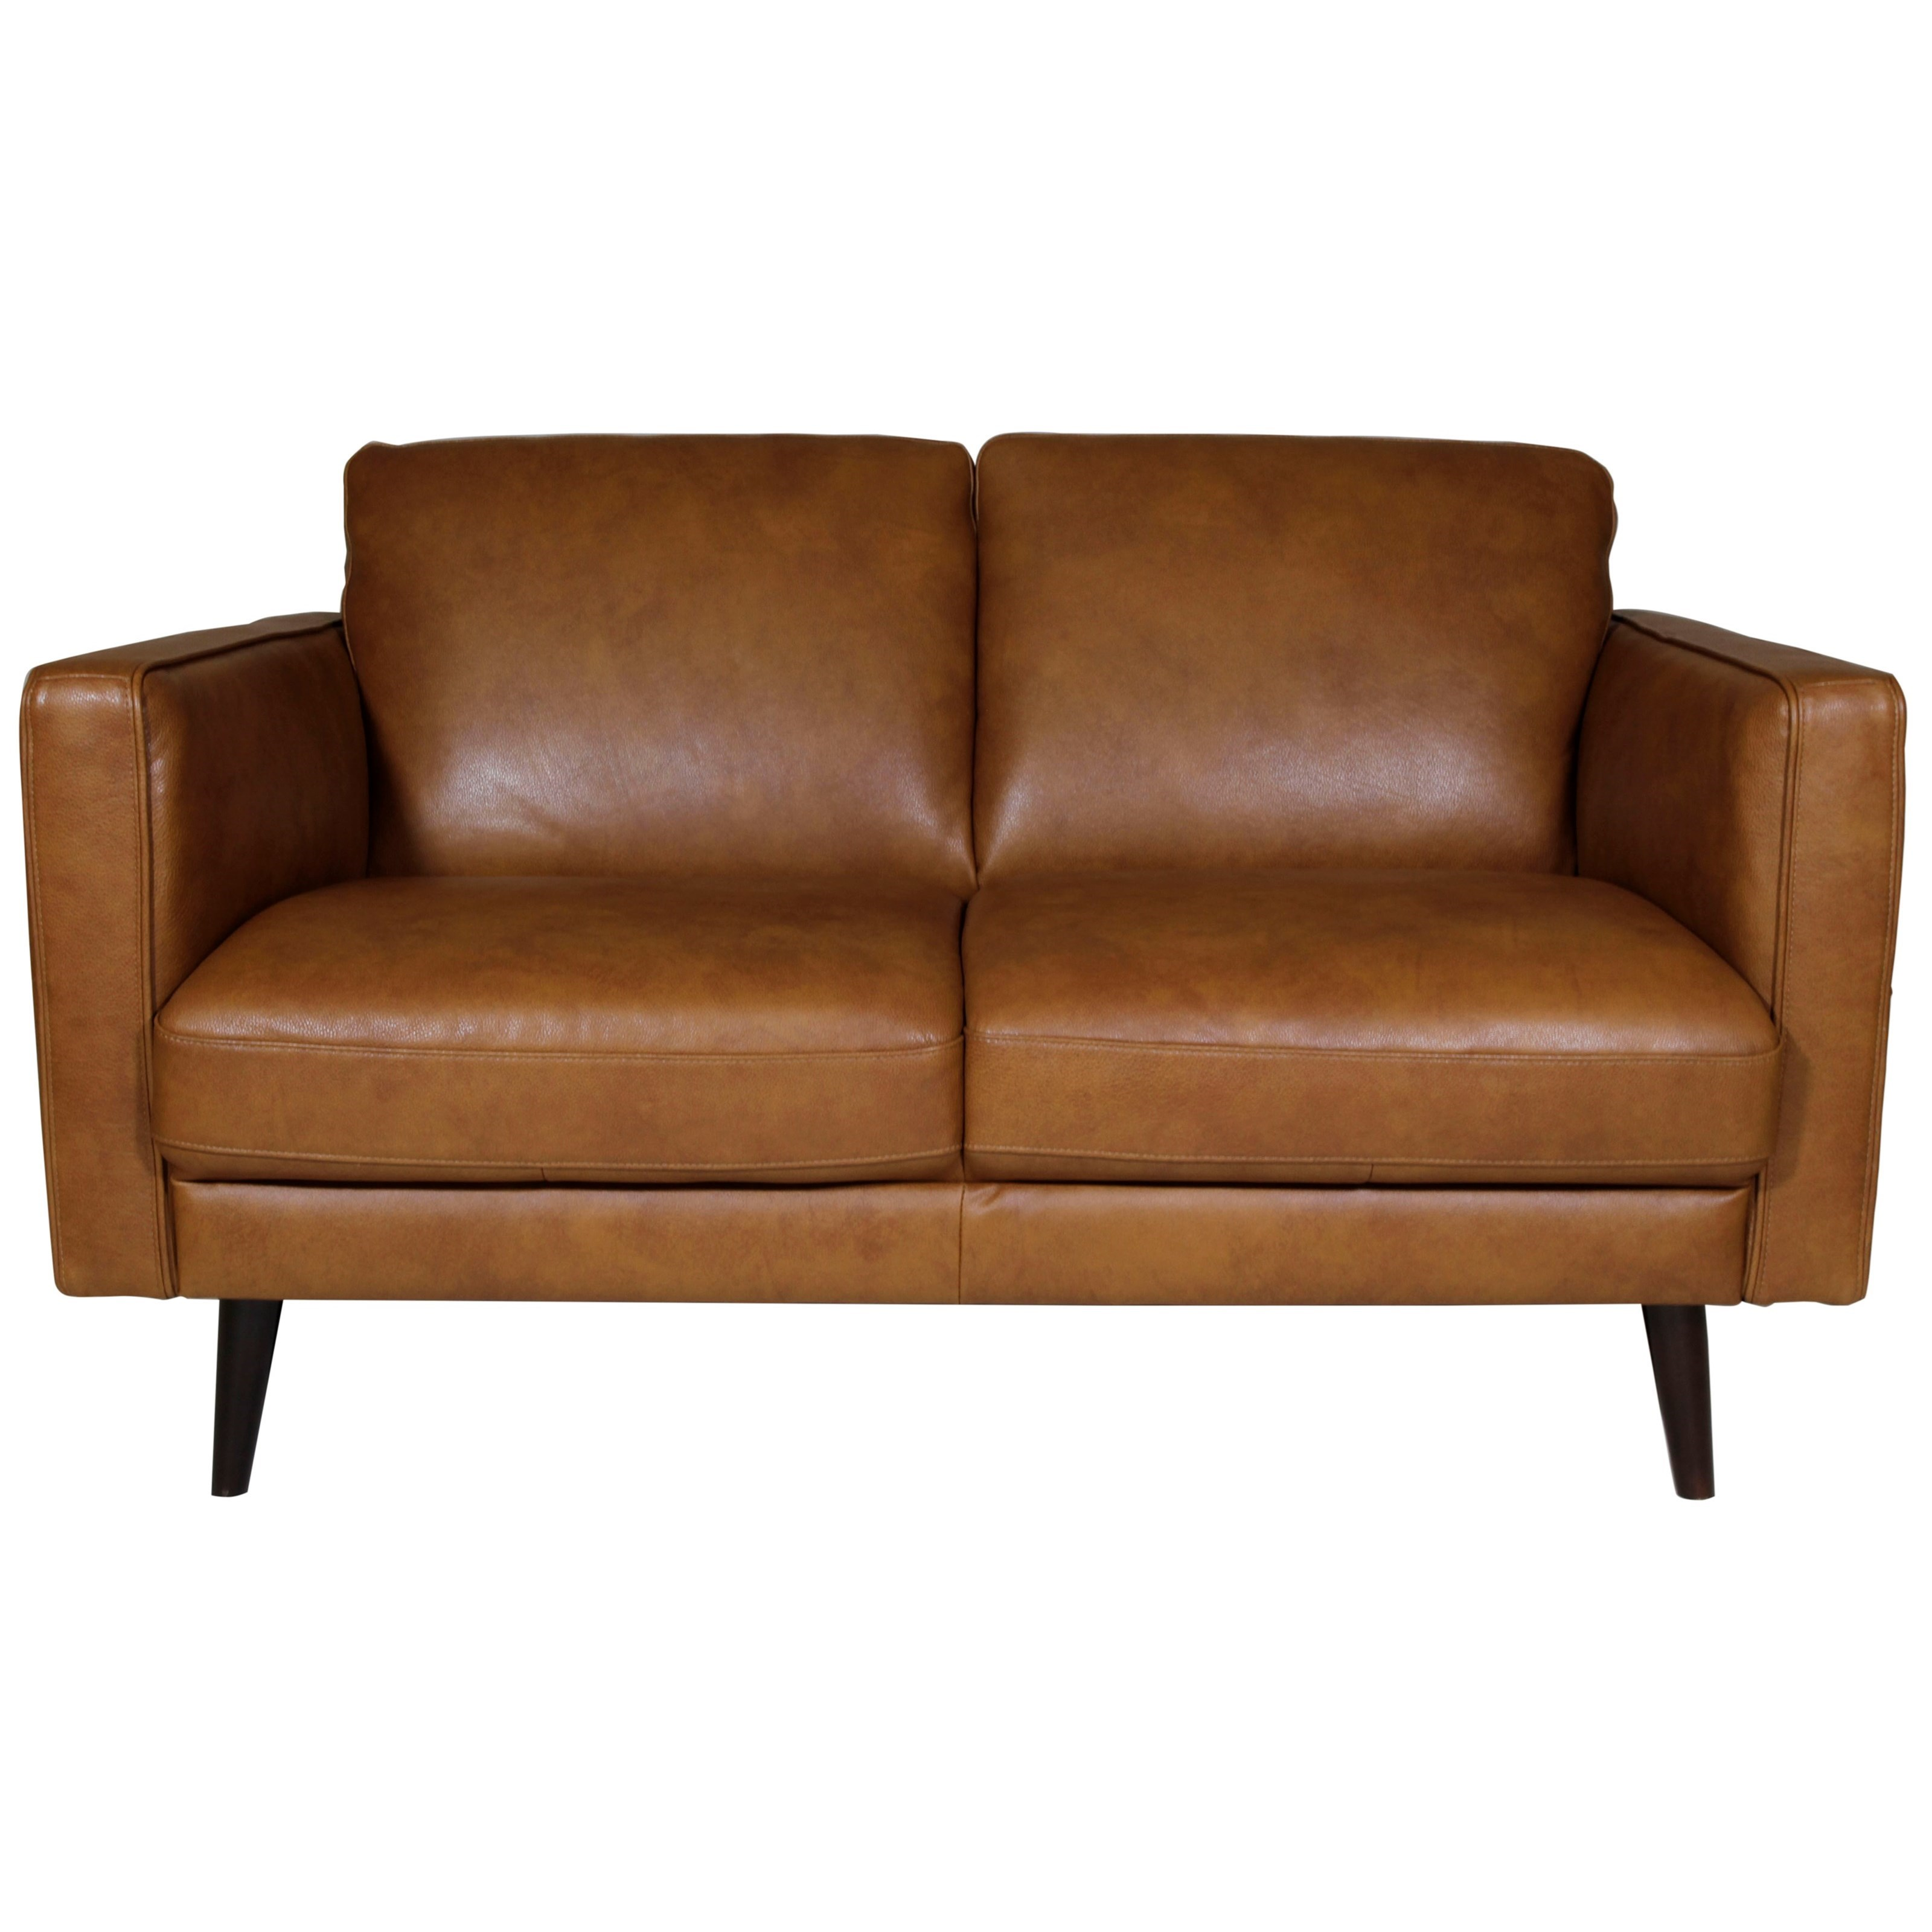 Destrezza Loveseat by Natuzzi Editions at Red Knot